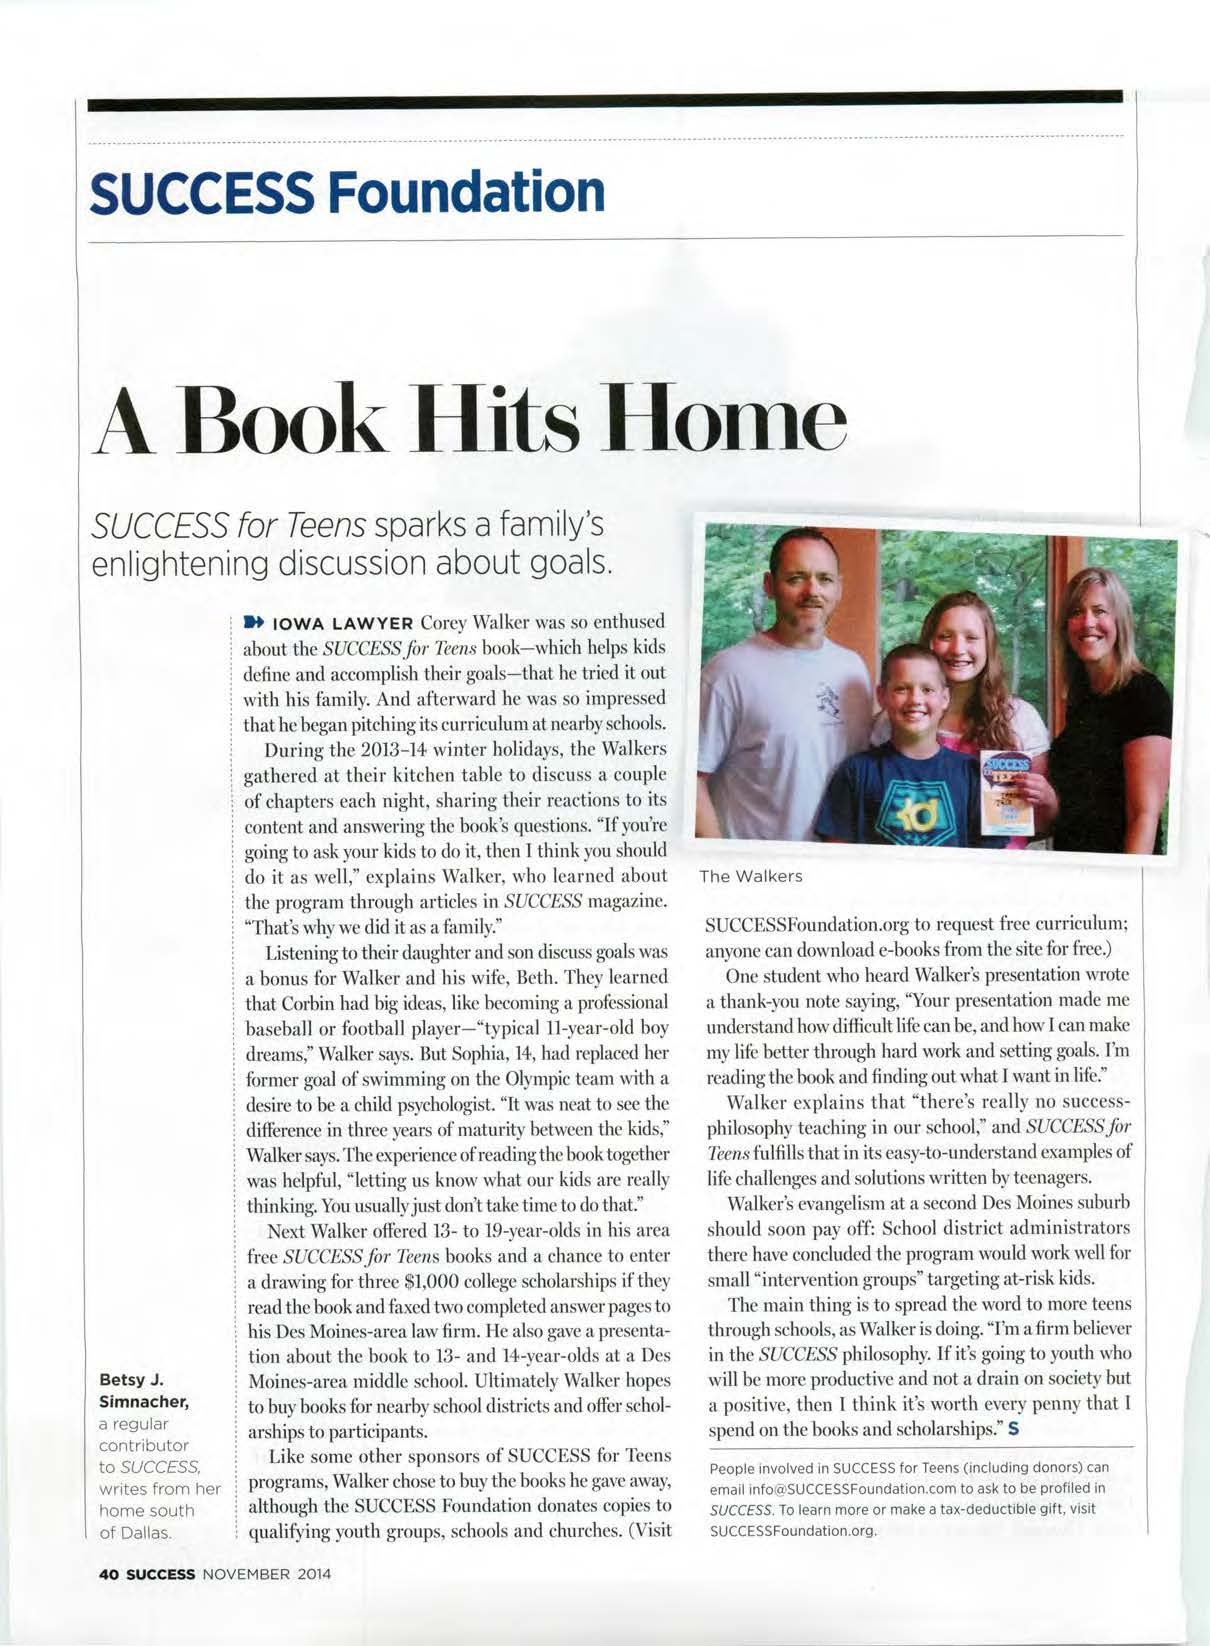 SUCCESS Magazine article featuring corey and beth walker